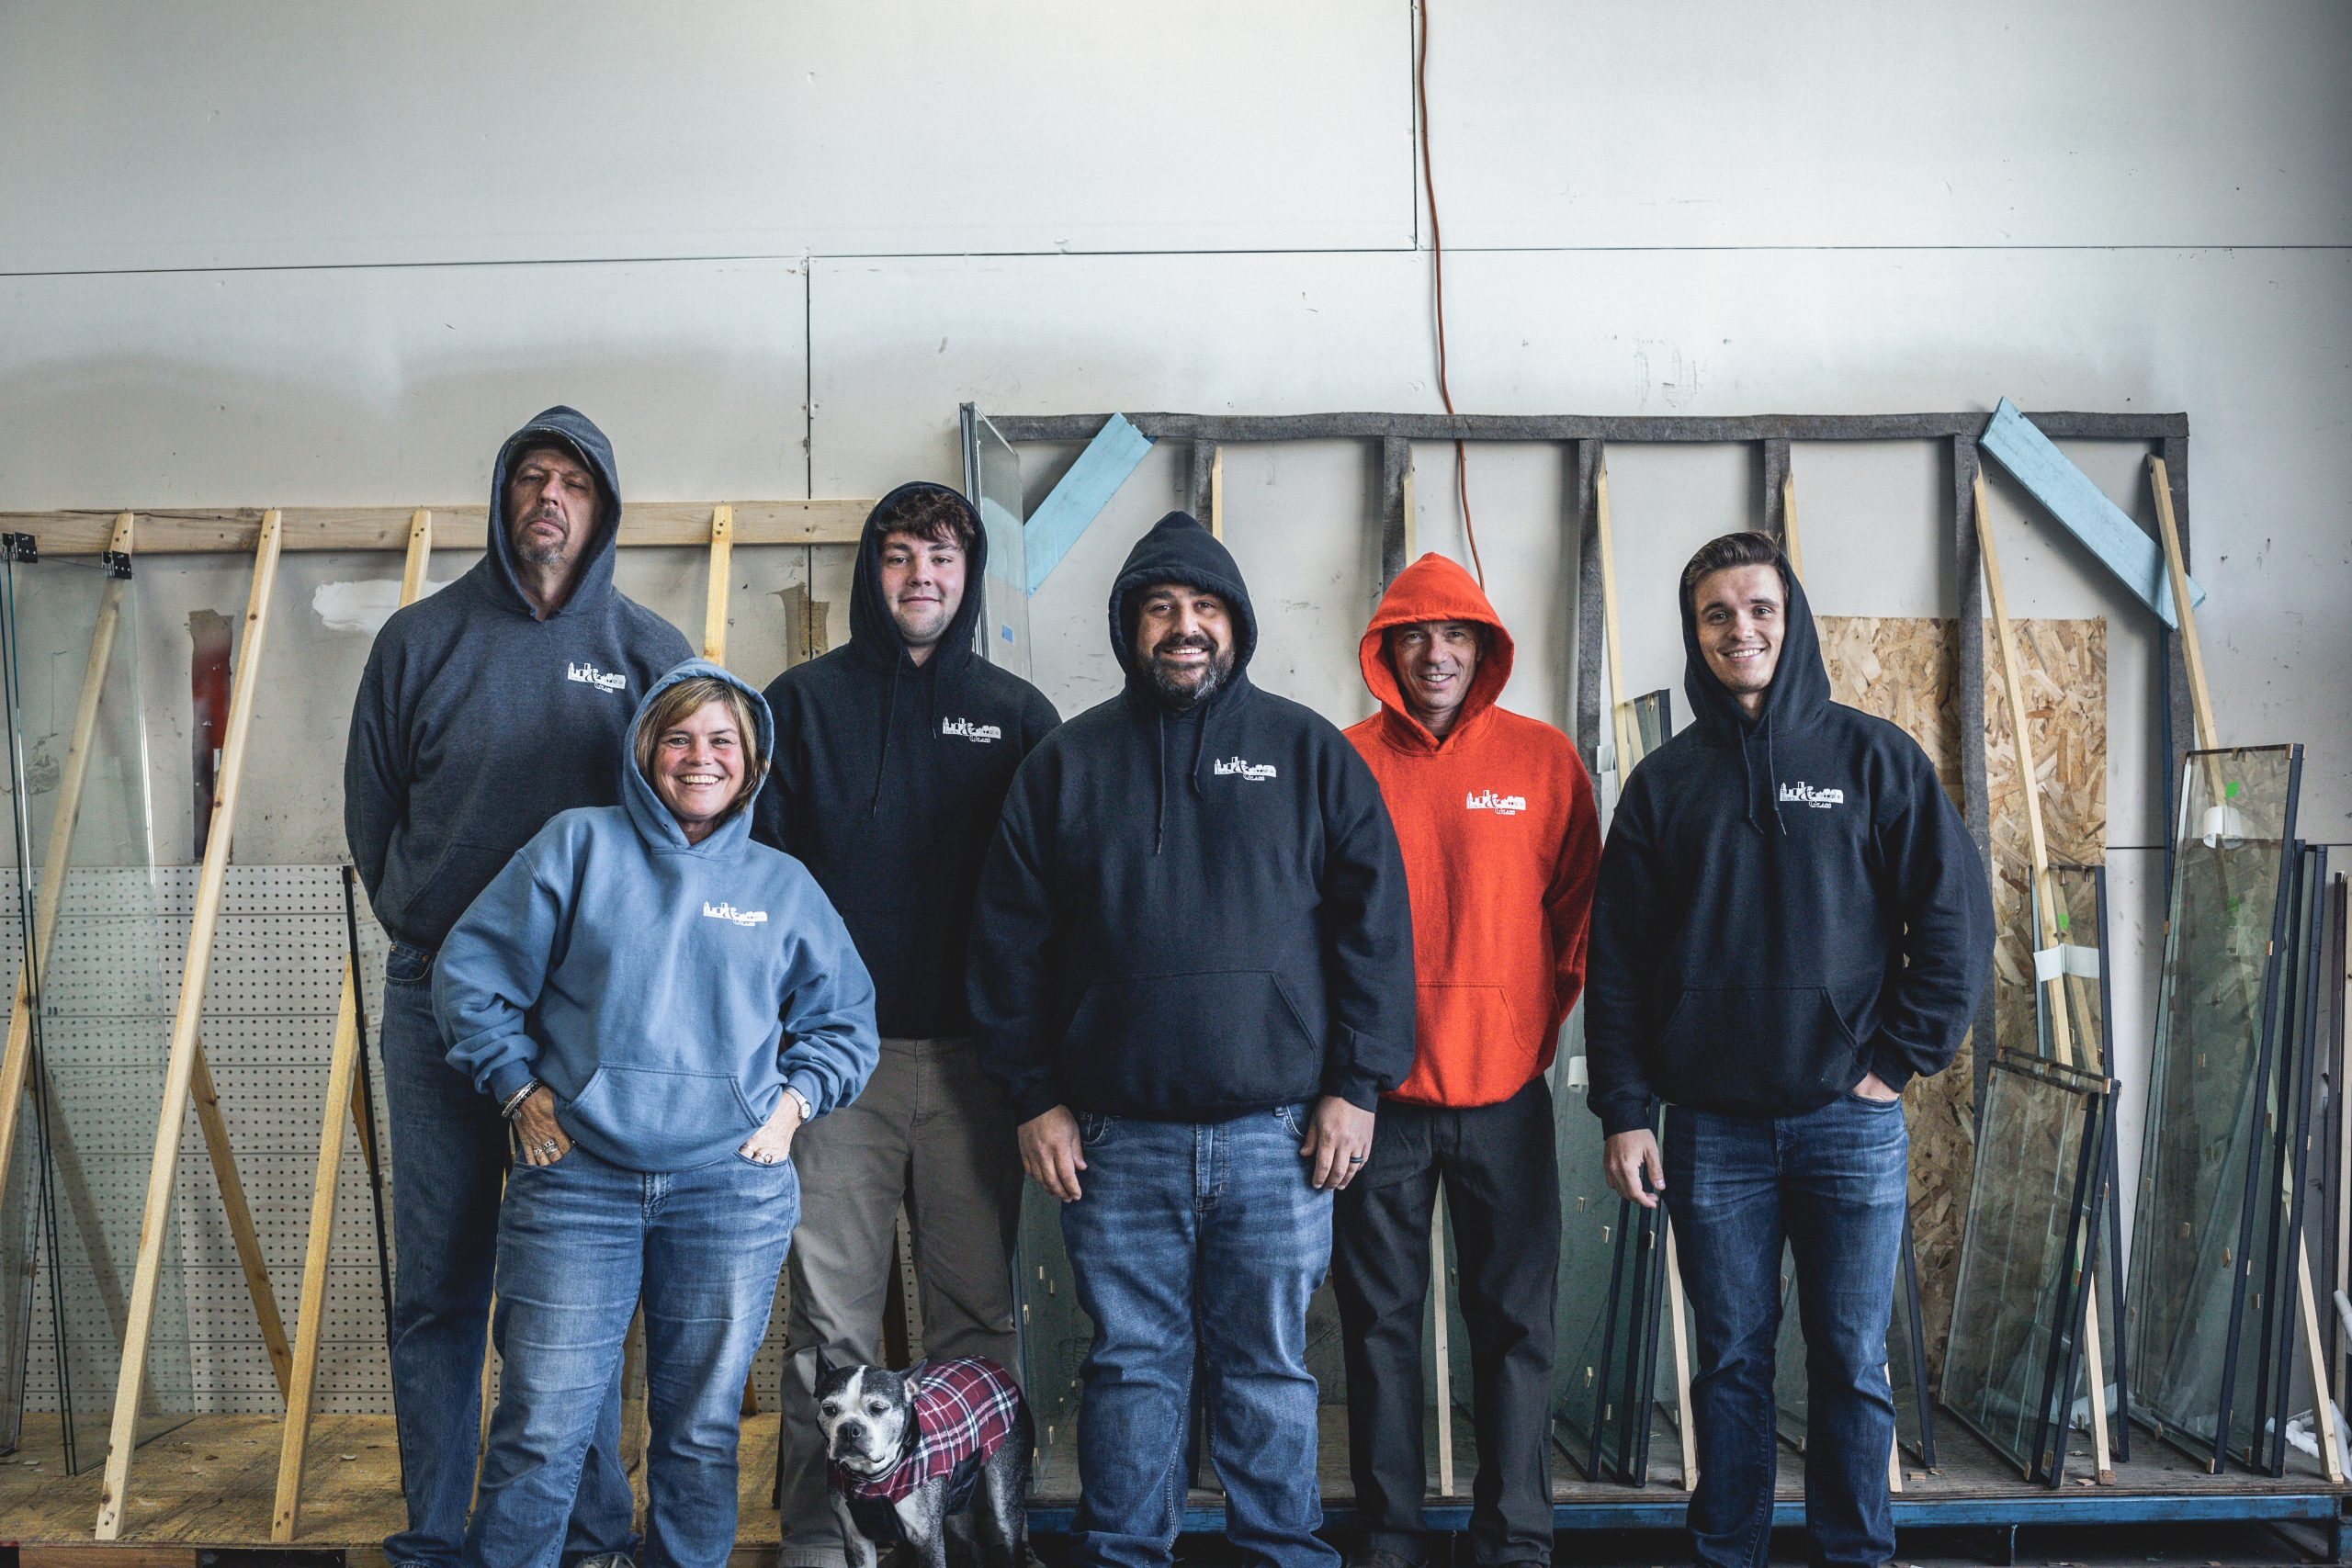 The Happy Valley window screen repair crew at T&C Glass